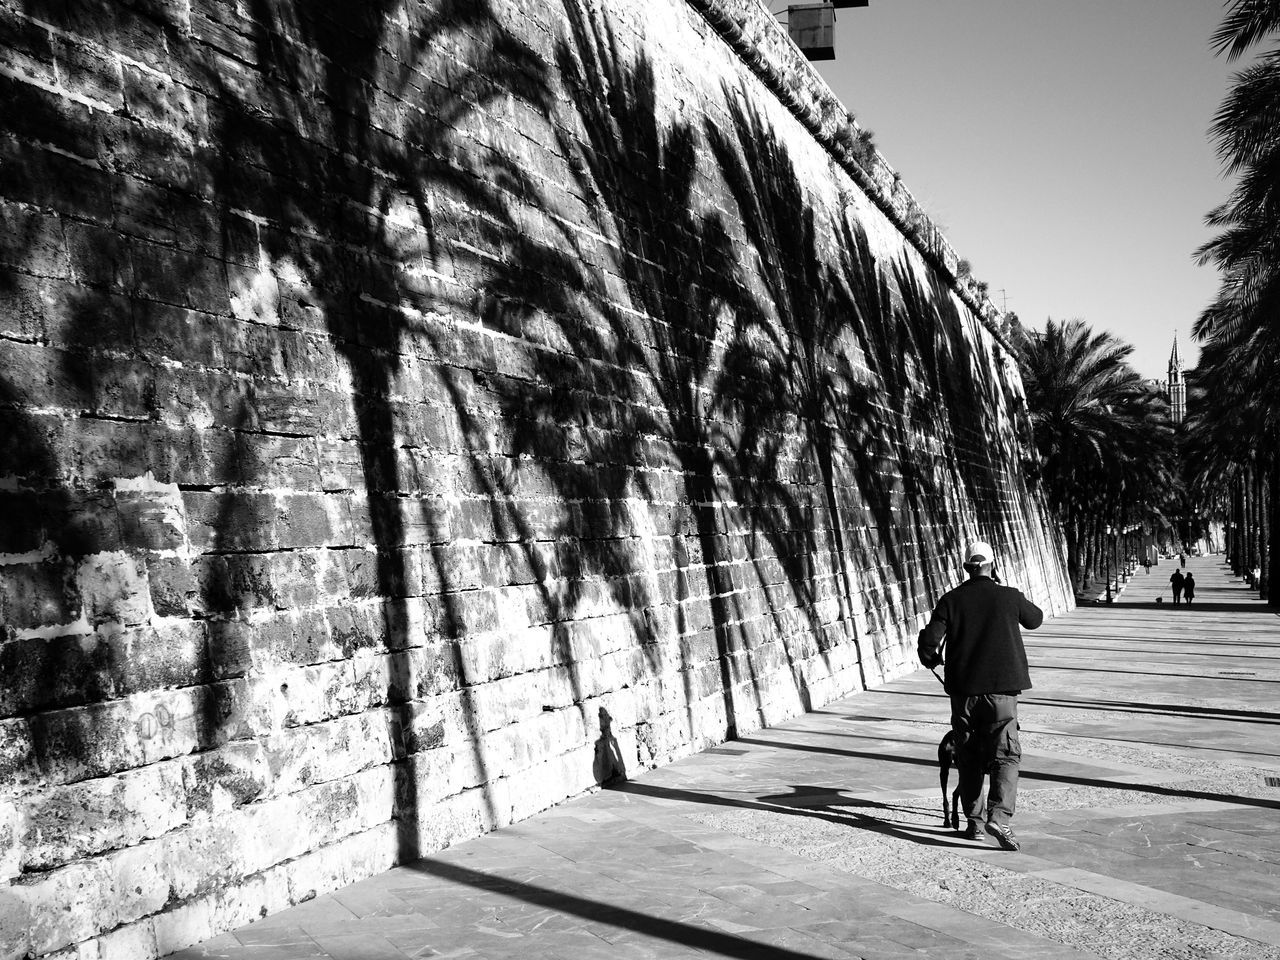 full length, real people, walking, rear view, one person, day, outdoors, men, lifestyles, built structure, standing, architecture, shadow, tree, building exterior, one man only, adult, people